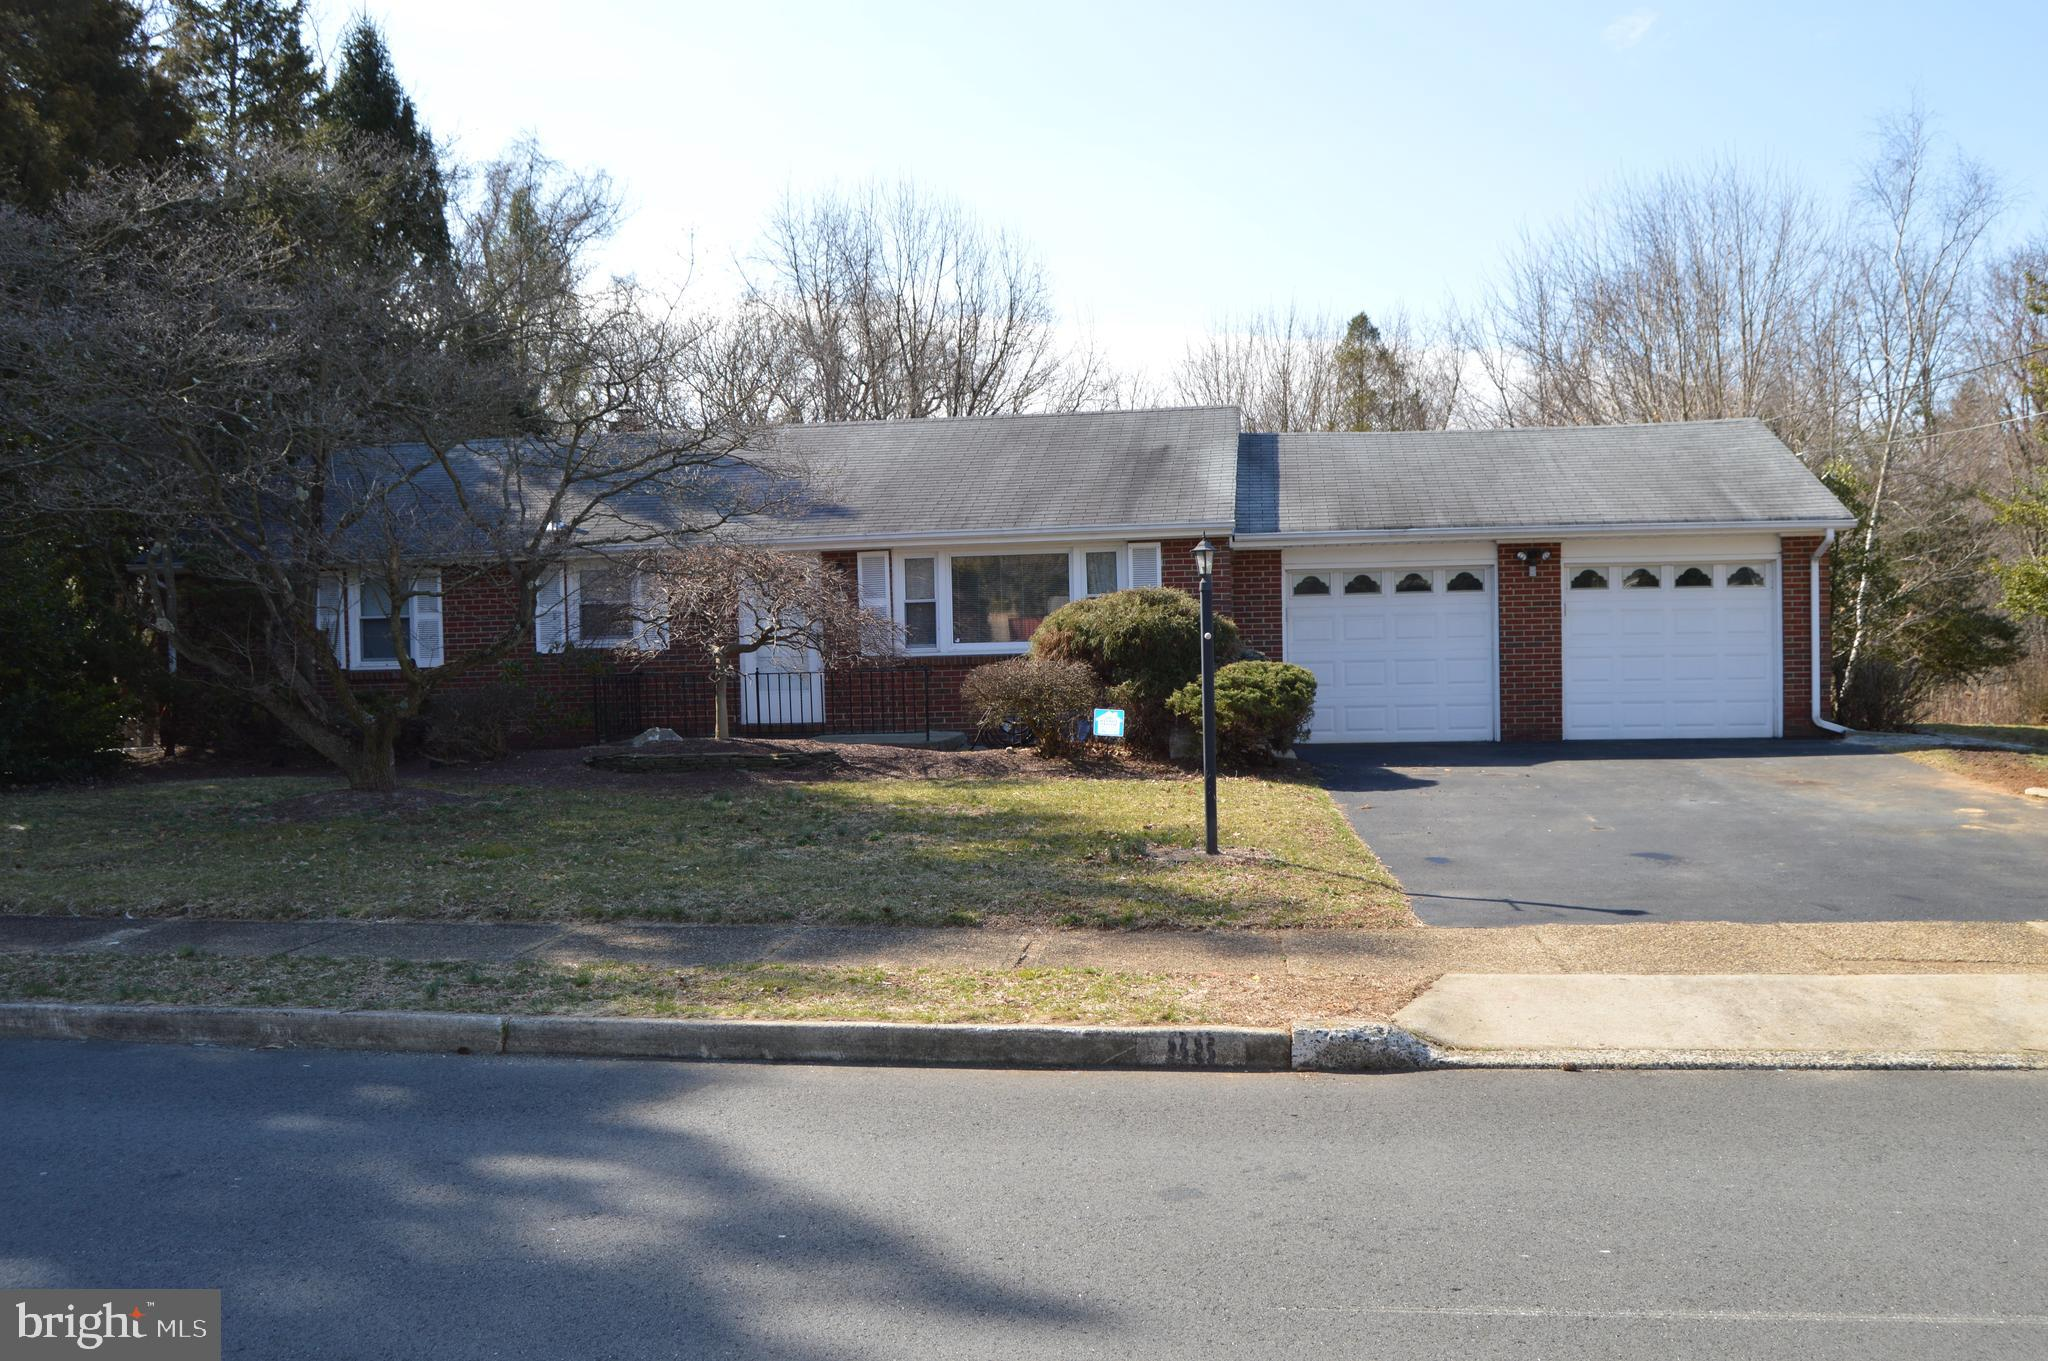 """This well built custom brick ranch is ideally located in the popular """"Washington Square"""" community in Yardville. It sits on a .38 acre lot that backs to woods owned by Hamilton Twp. There is an over-sized two car attached garage, a 10 x 14' storage shed, paver patio and a 10 x 17' car tent that is included. The interior includes a large living room, spacious eat-in kitchen, 3 bedrooms and a ceramic tile bathroom. The third bedroom with a closet is presently used as a den. There is also a full unfinished basement for extra storage and the opportunity to finish for additional living space. Some of the many features include: hardwood floors, a sun setter retractable awning over the patio, thermopane replacement windows, bay window in the 3rd bedroom/den, built in microwave and pantry closet, alarm system and all appliances plus a one year home warranty for added peace of mind is included."""